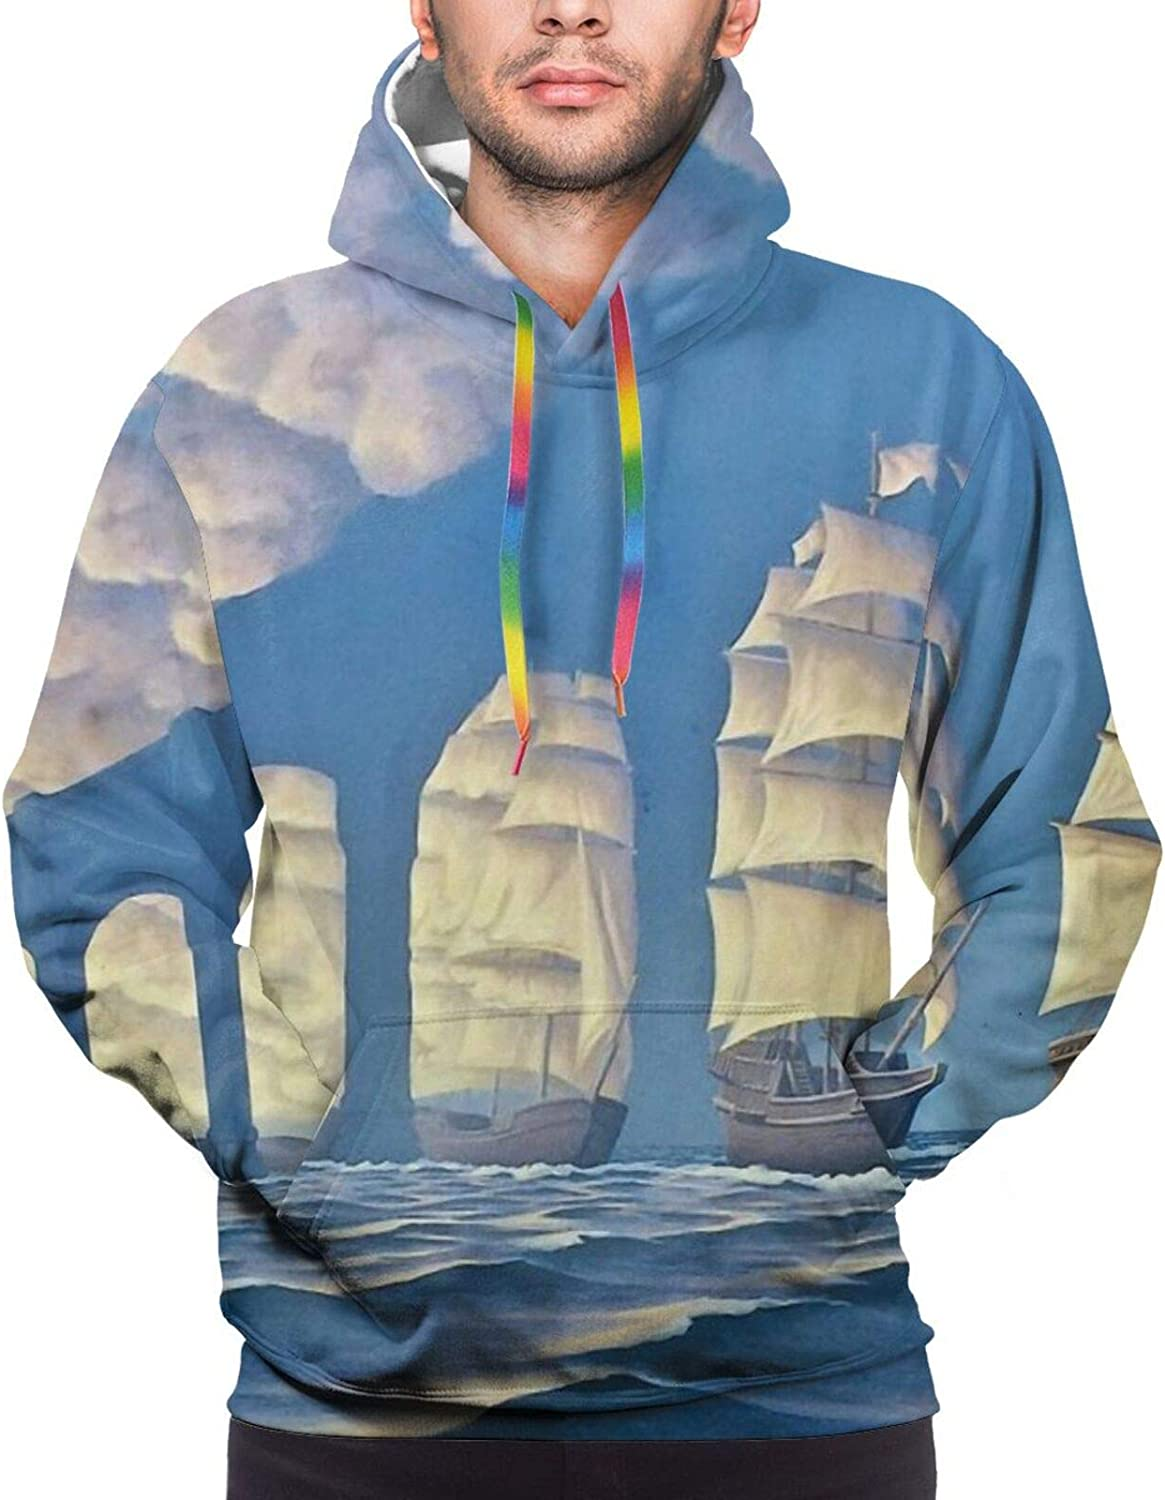 Clouds Sailboat Bridge Optical 67% OFF of fixed price Sweatshirt Men's Illusion Max 48% OFF Hooded